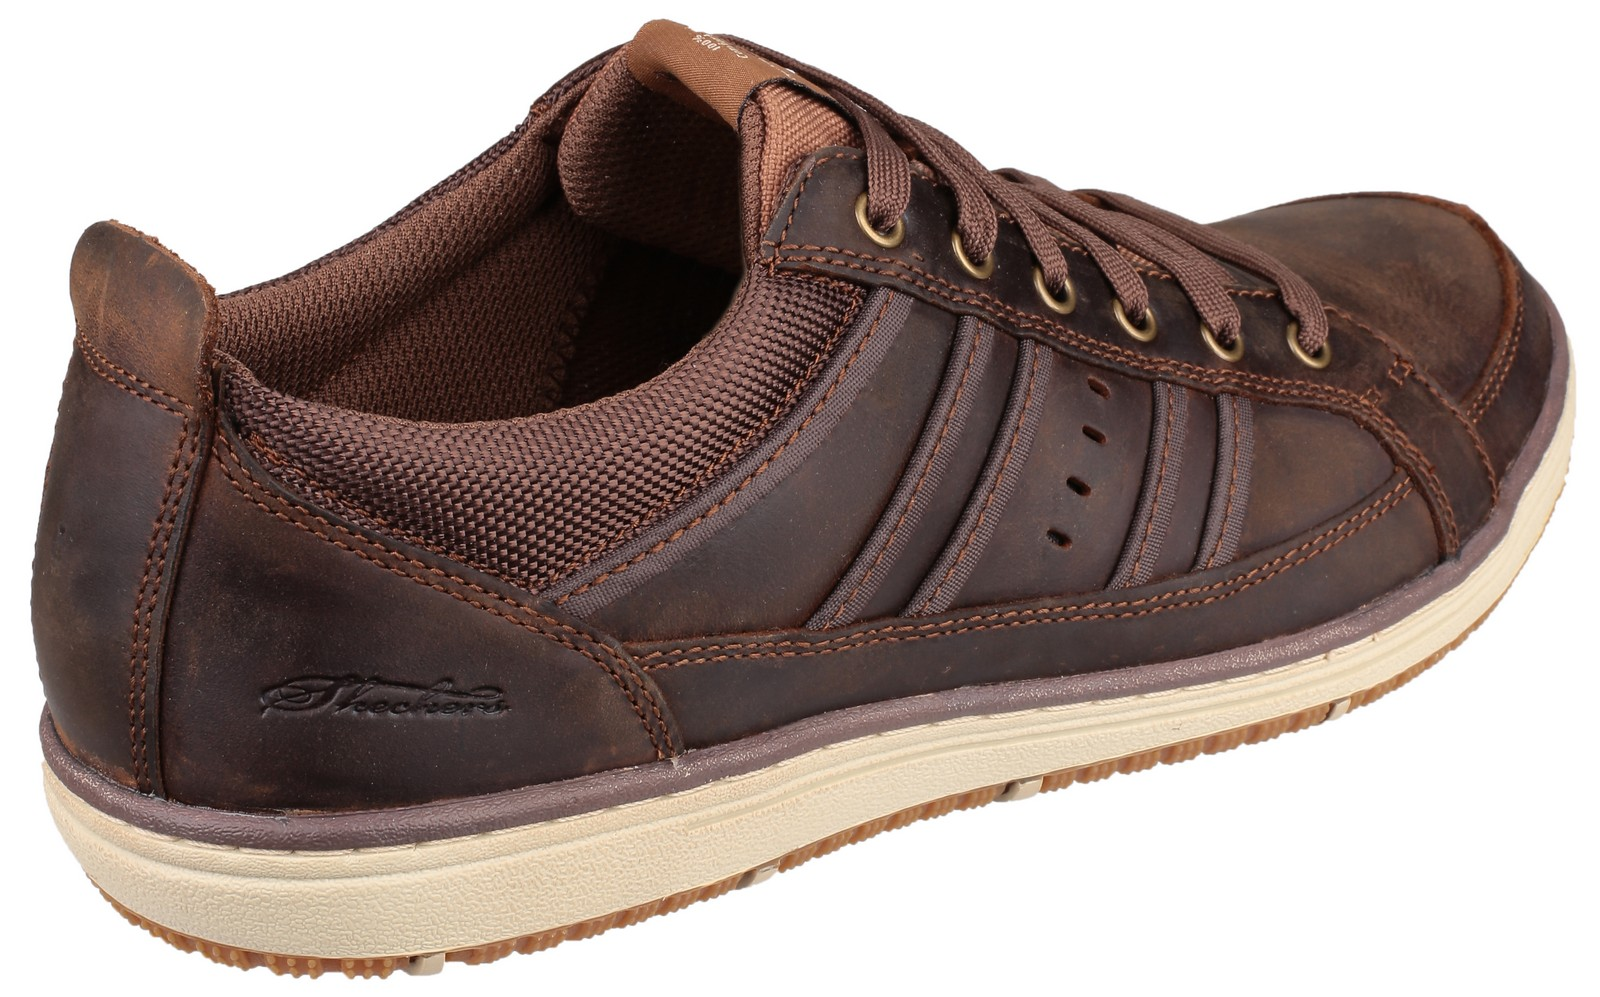 Mens Hamal Shoes Skechers yJTk2NVCT